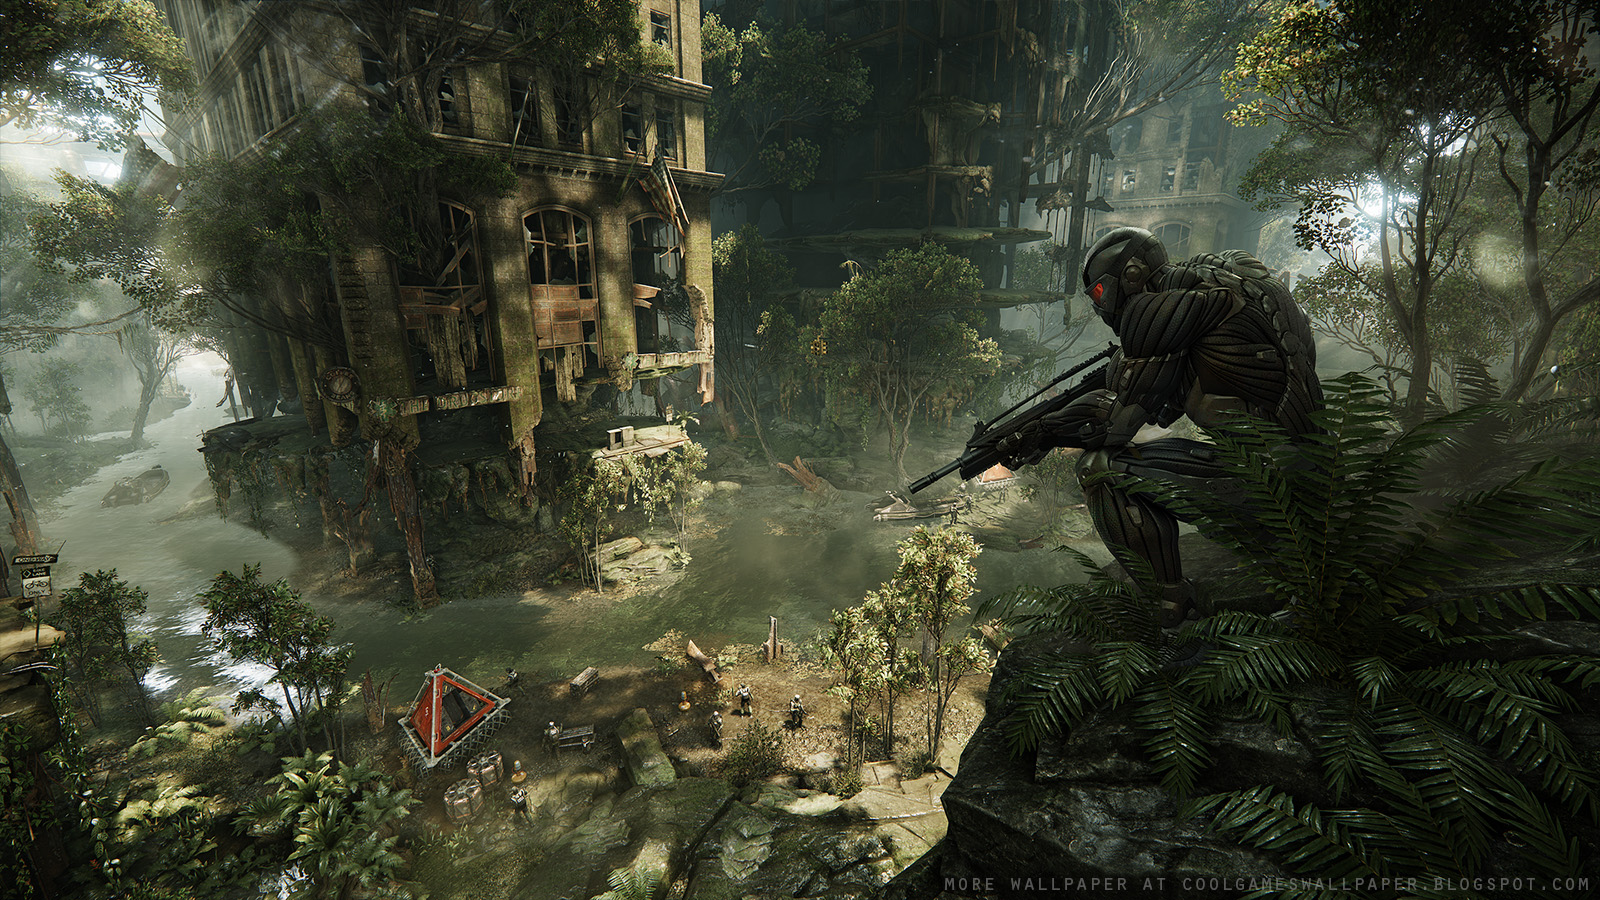 crysis 4 wallpaper hd - photo #13